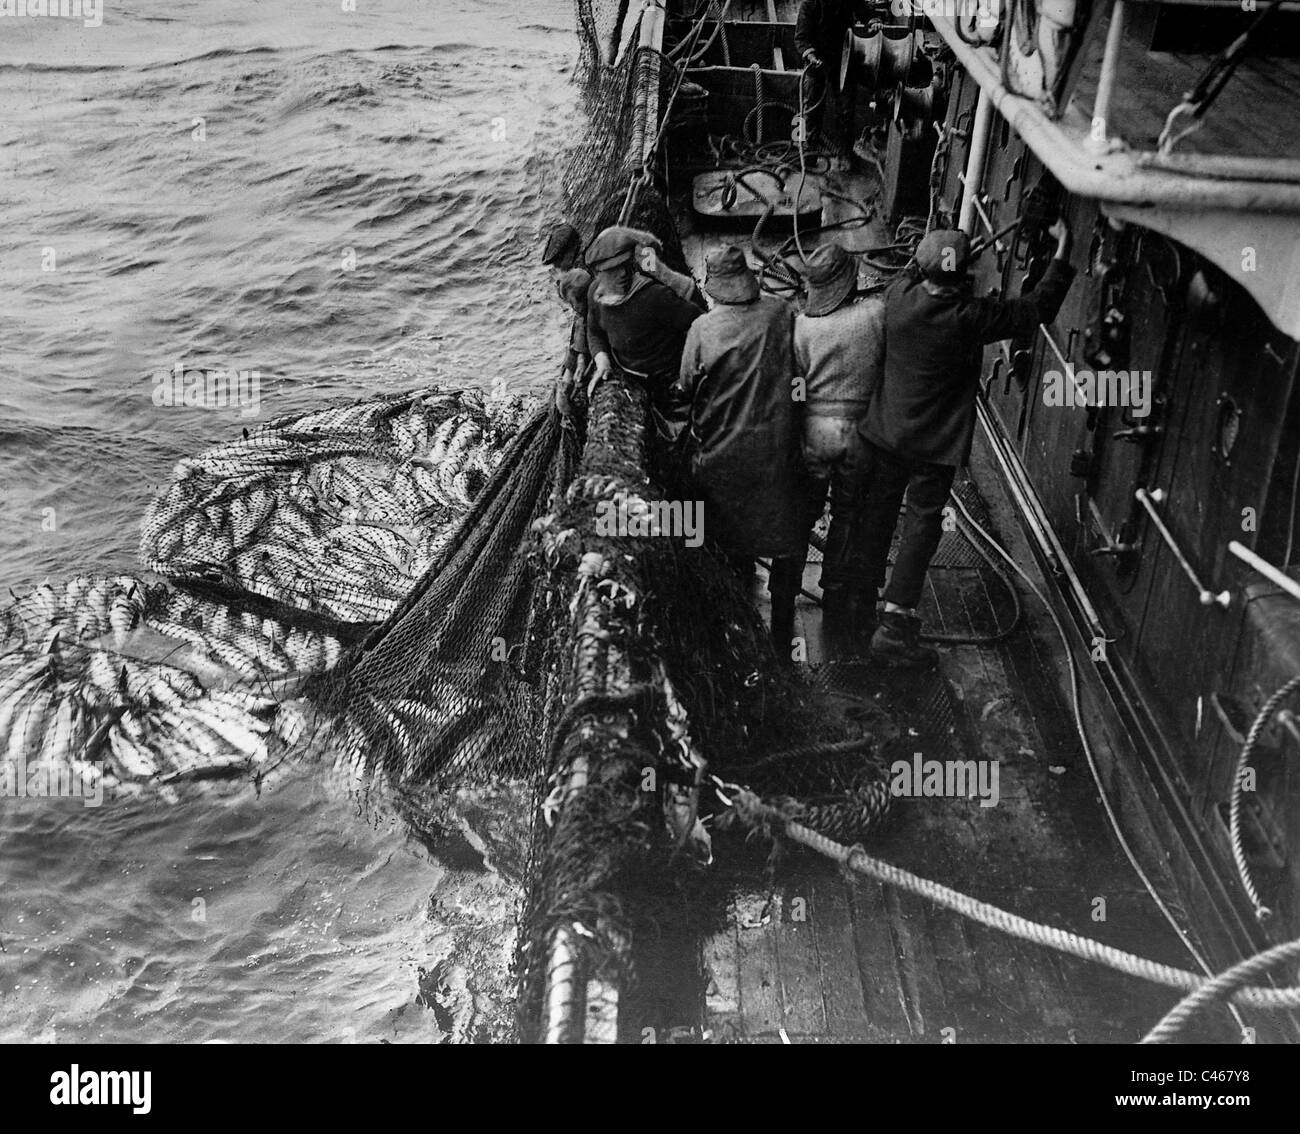 Fishermen take in their nets, 1913 - Stock Image